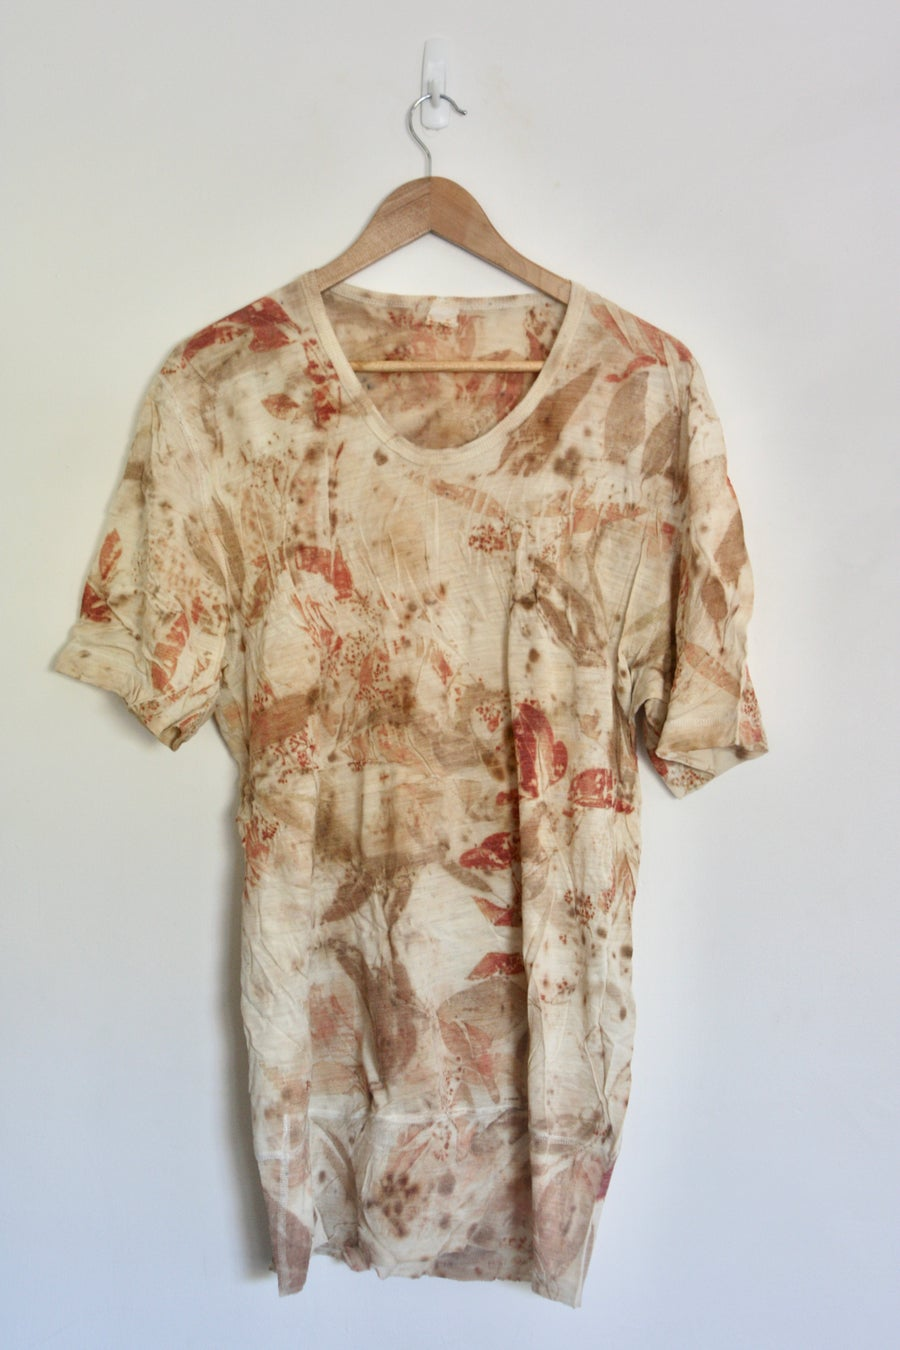 Image of Eco Dyed T-shirt - Large